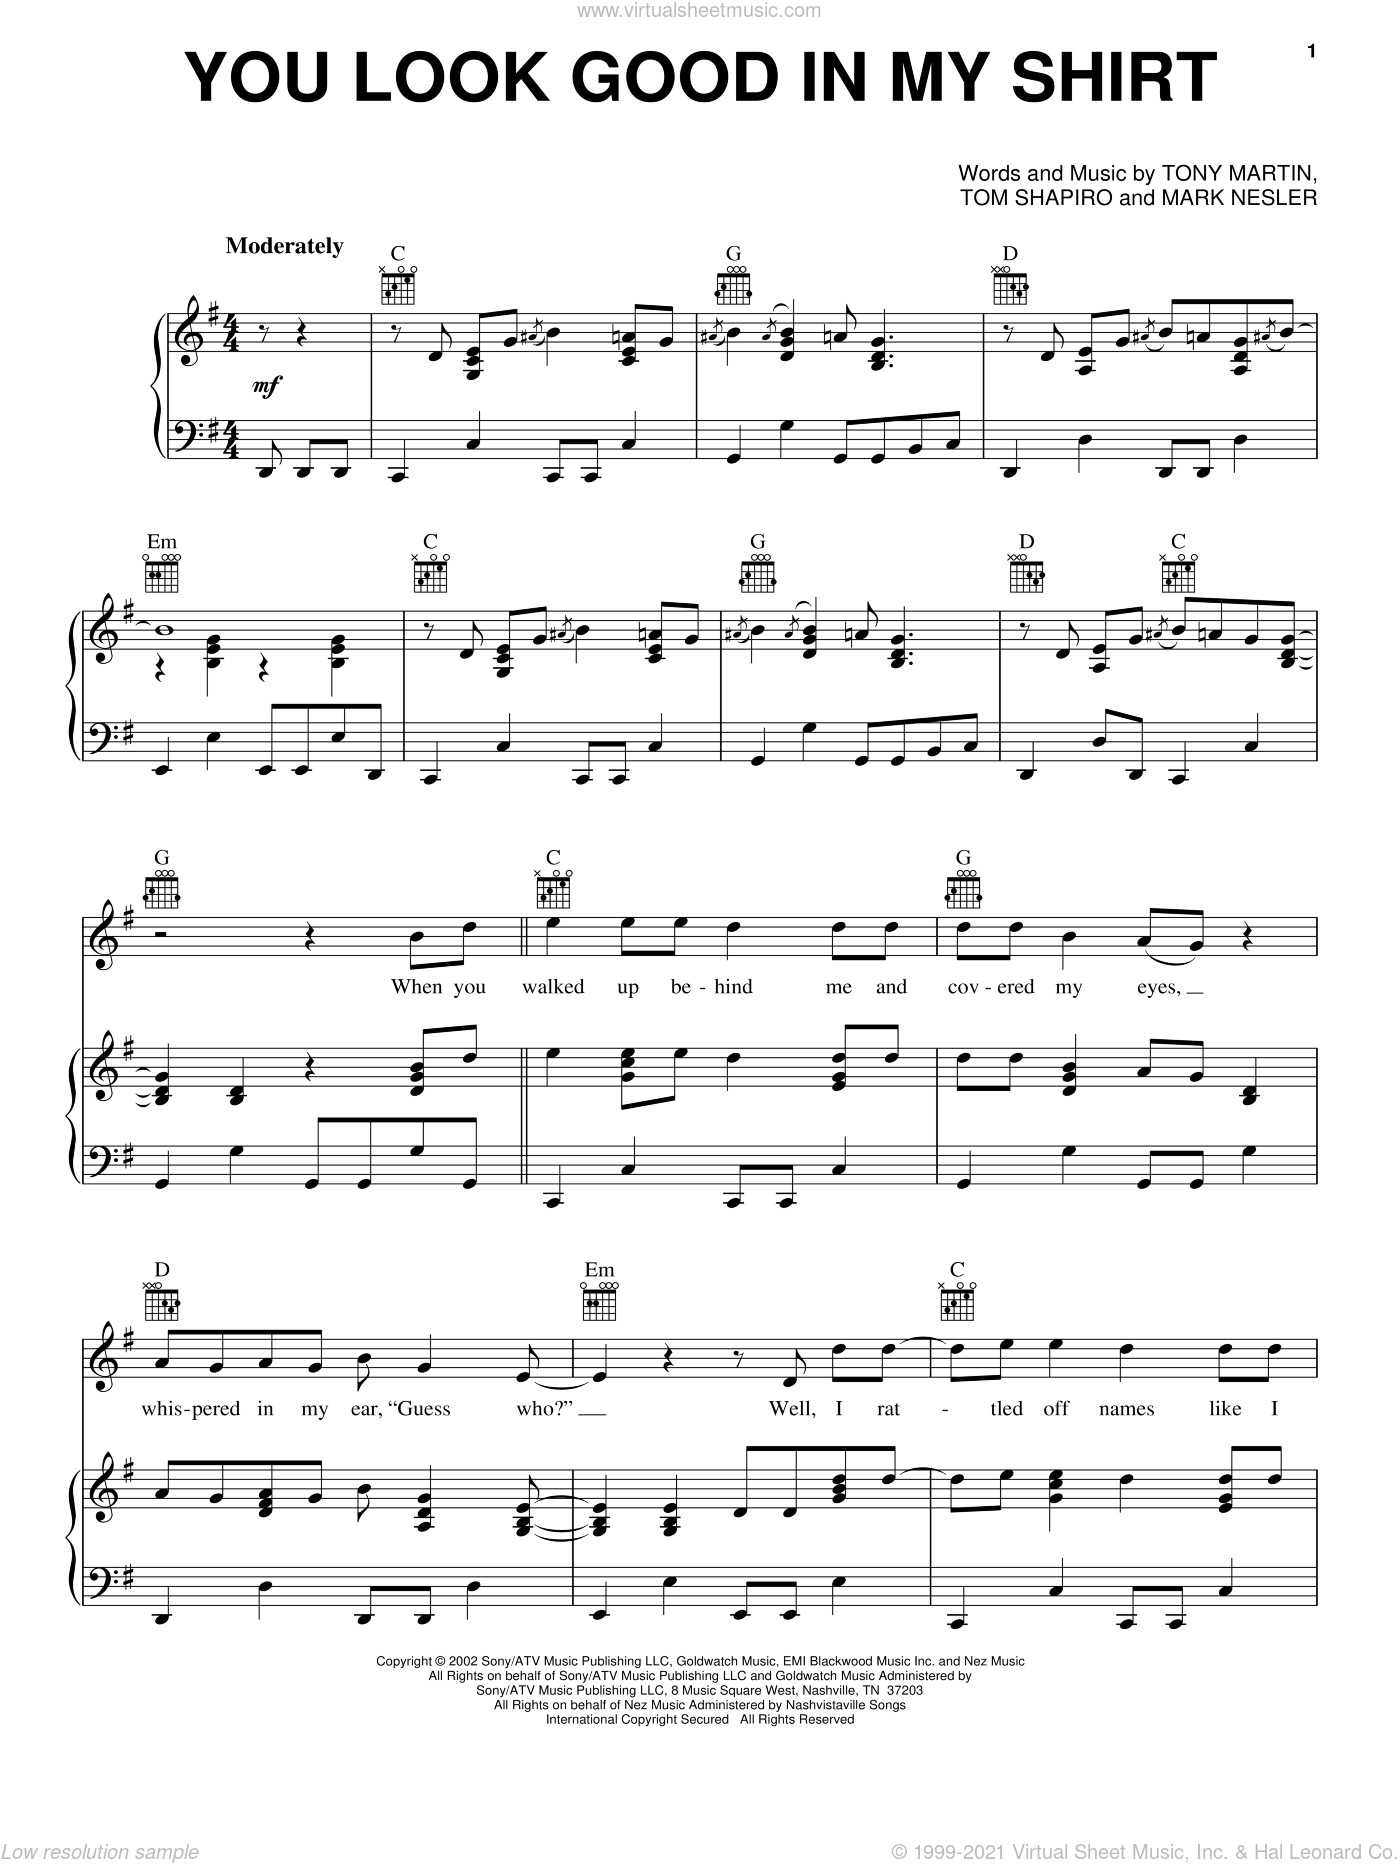 You Look Good In My Shirt sheet music for voice, piano or guitar by Tony Martin